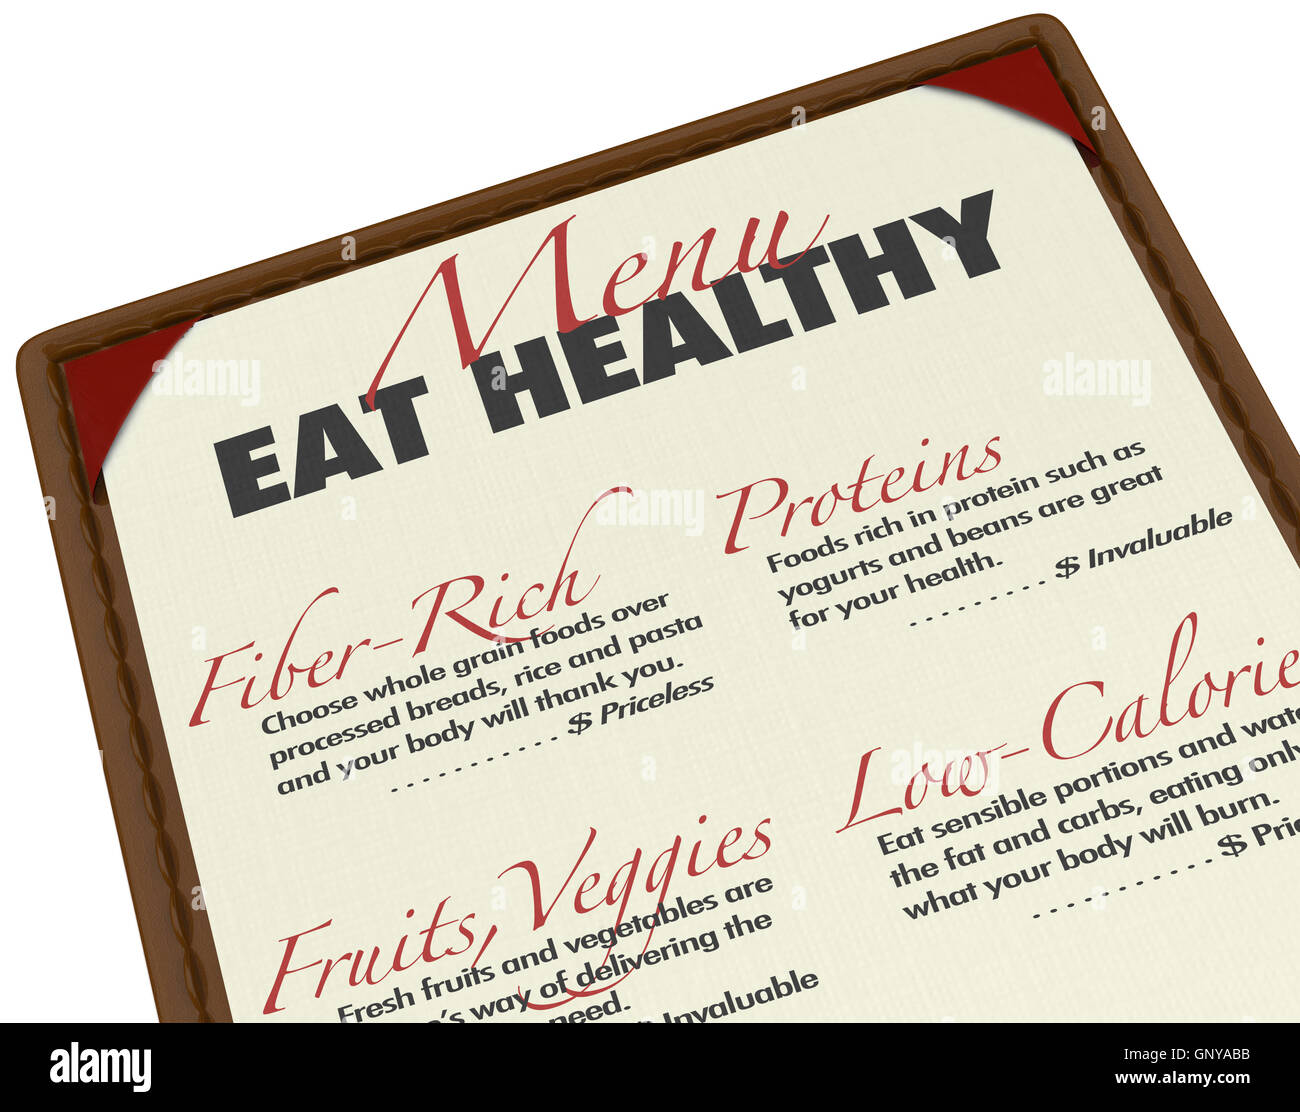 Eat Healthy Menu Smart Food Choices Protein Fiber Low-Fat - Stock Image